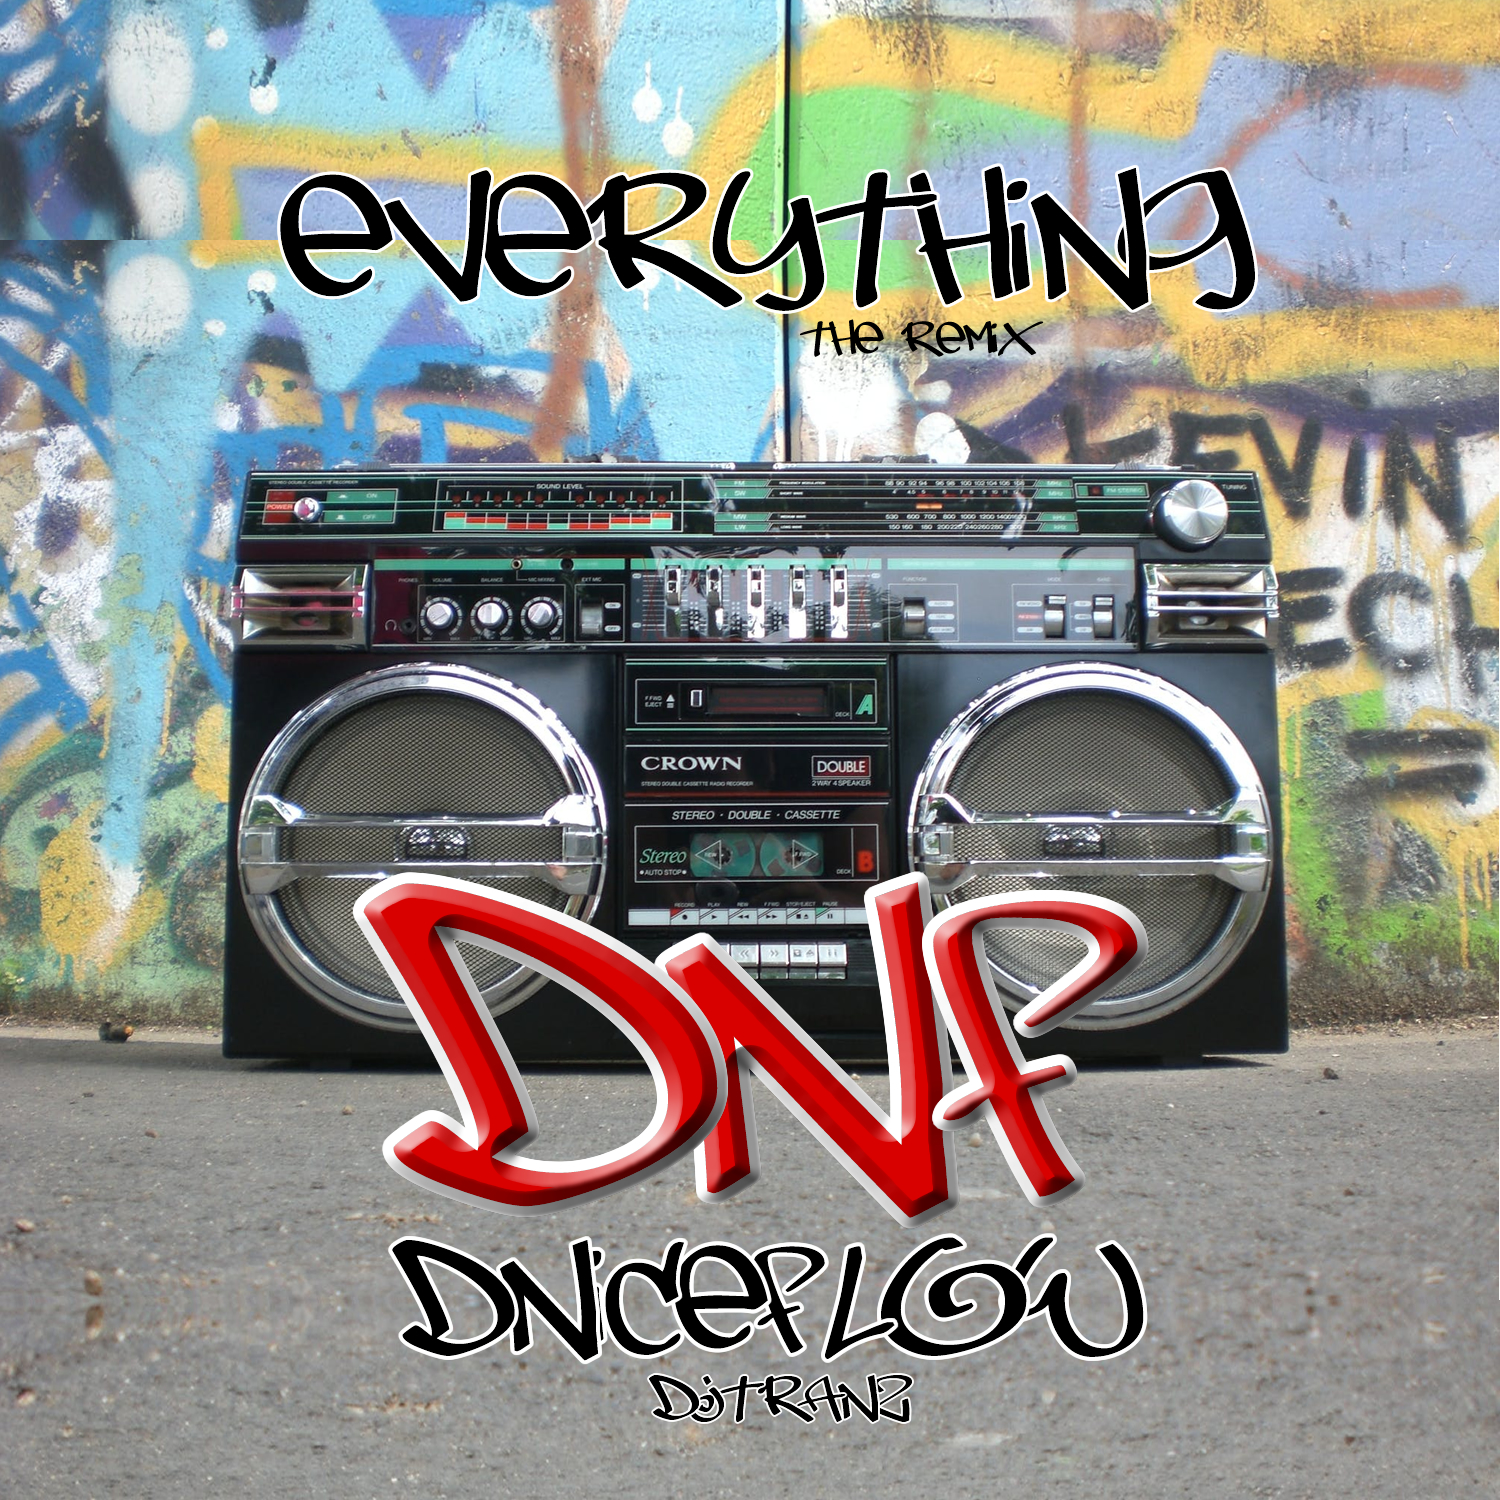 Everything - Dniceflow and DJ Tranz COVER